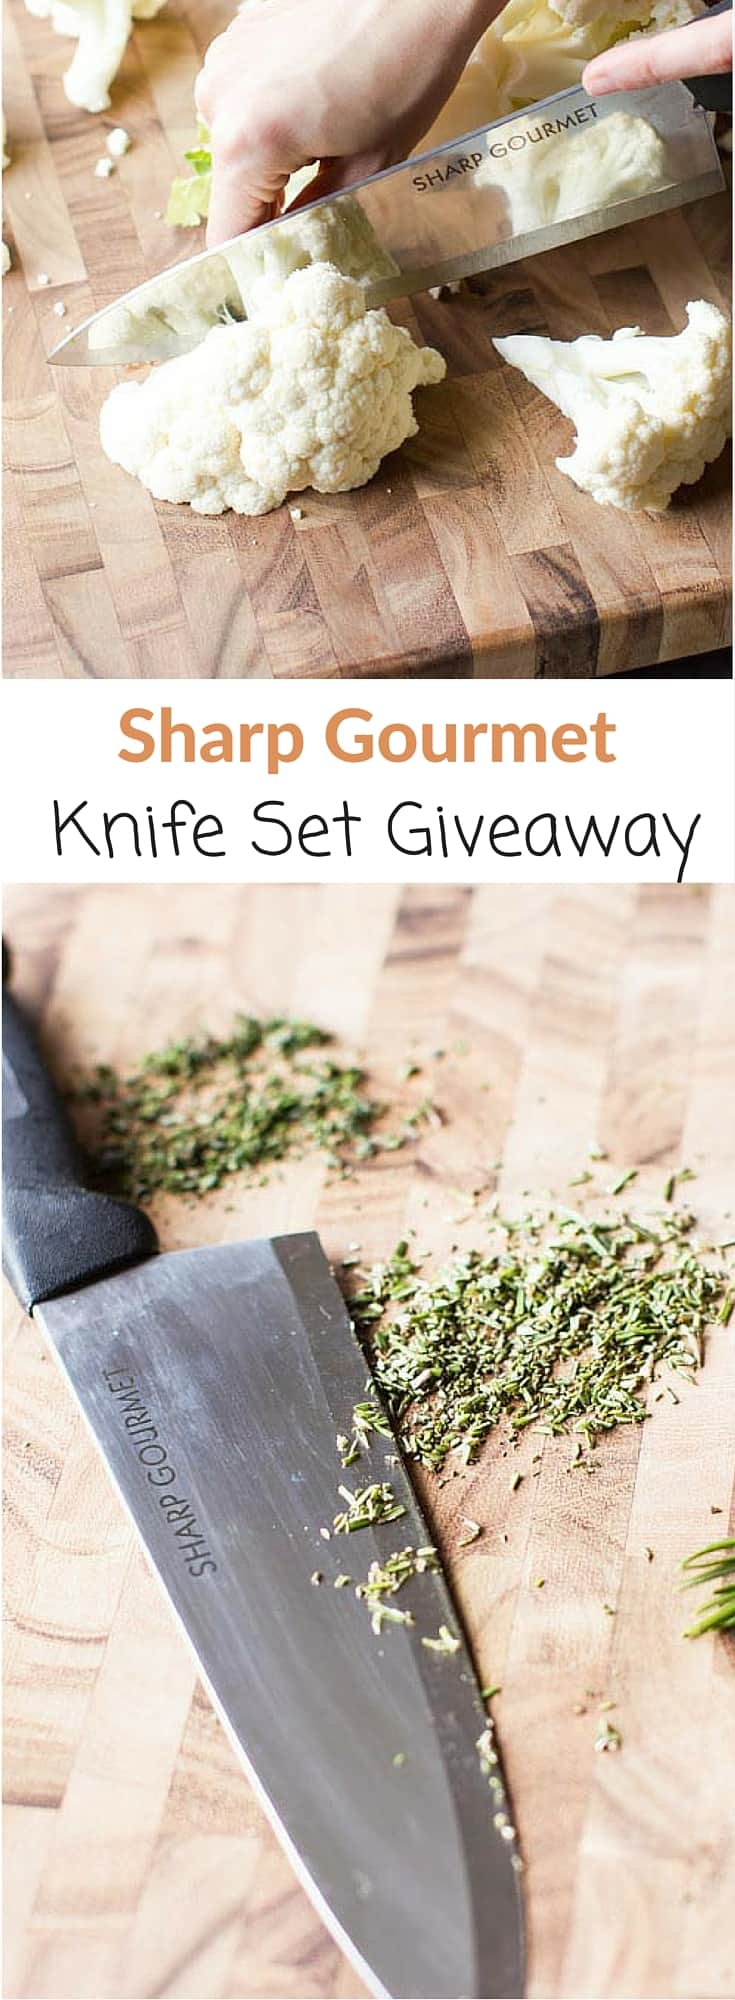 Win a subscription for an always sharp knife set in this Sharp Gourmet giveaway.